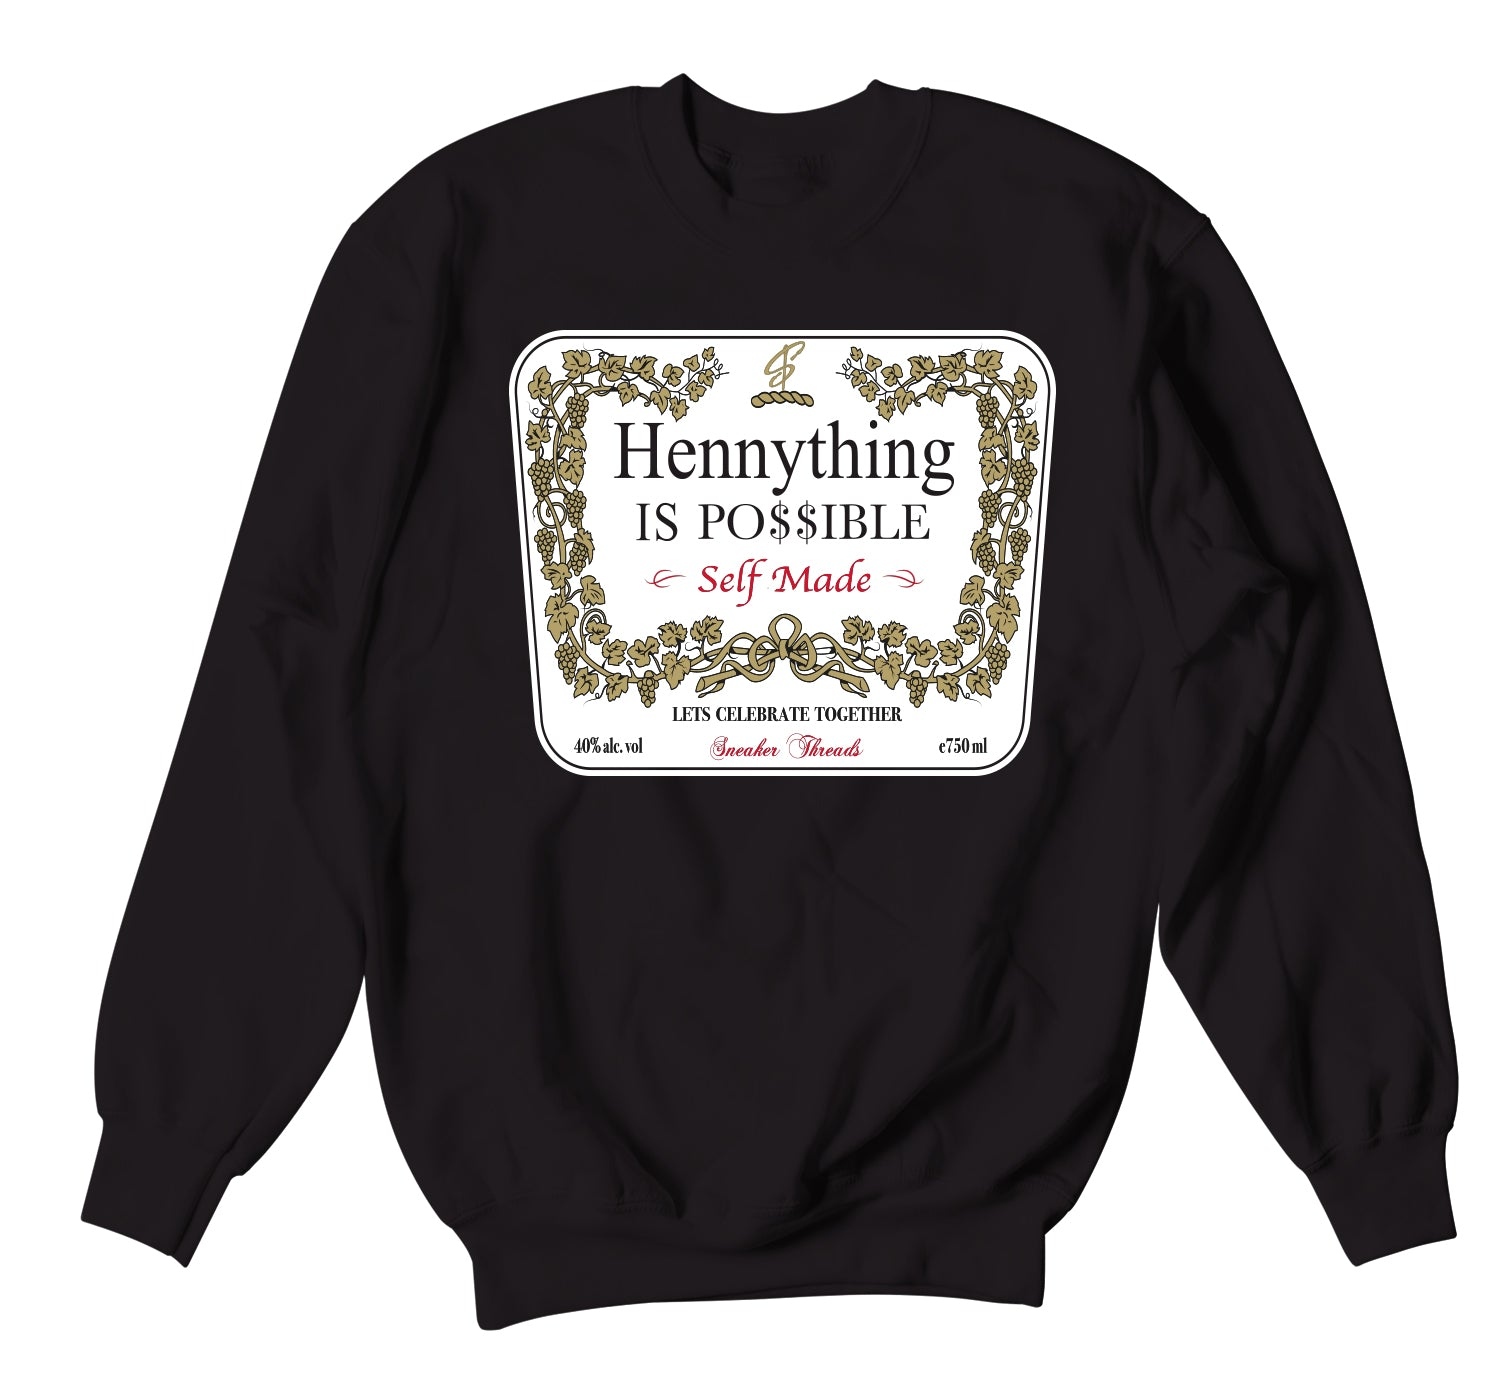 Yeezy 350 Bred Hennything Sweater